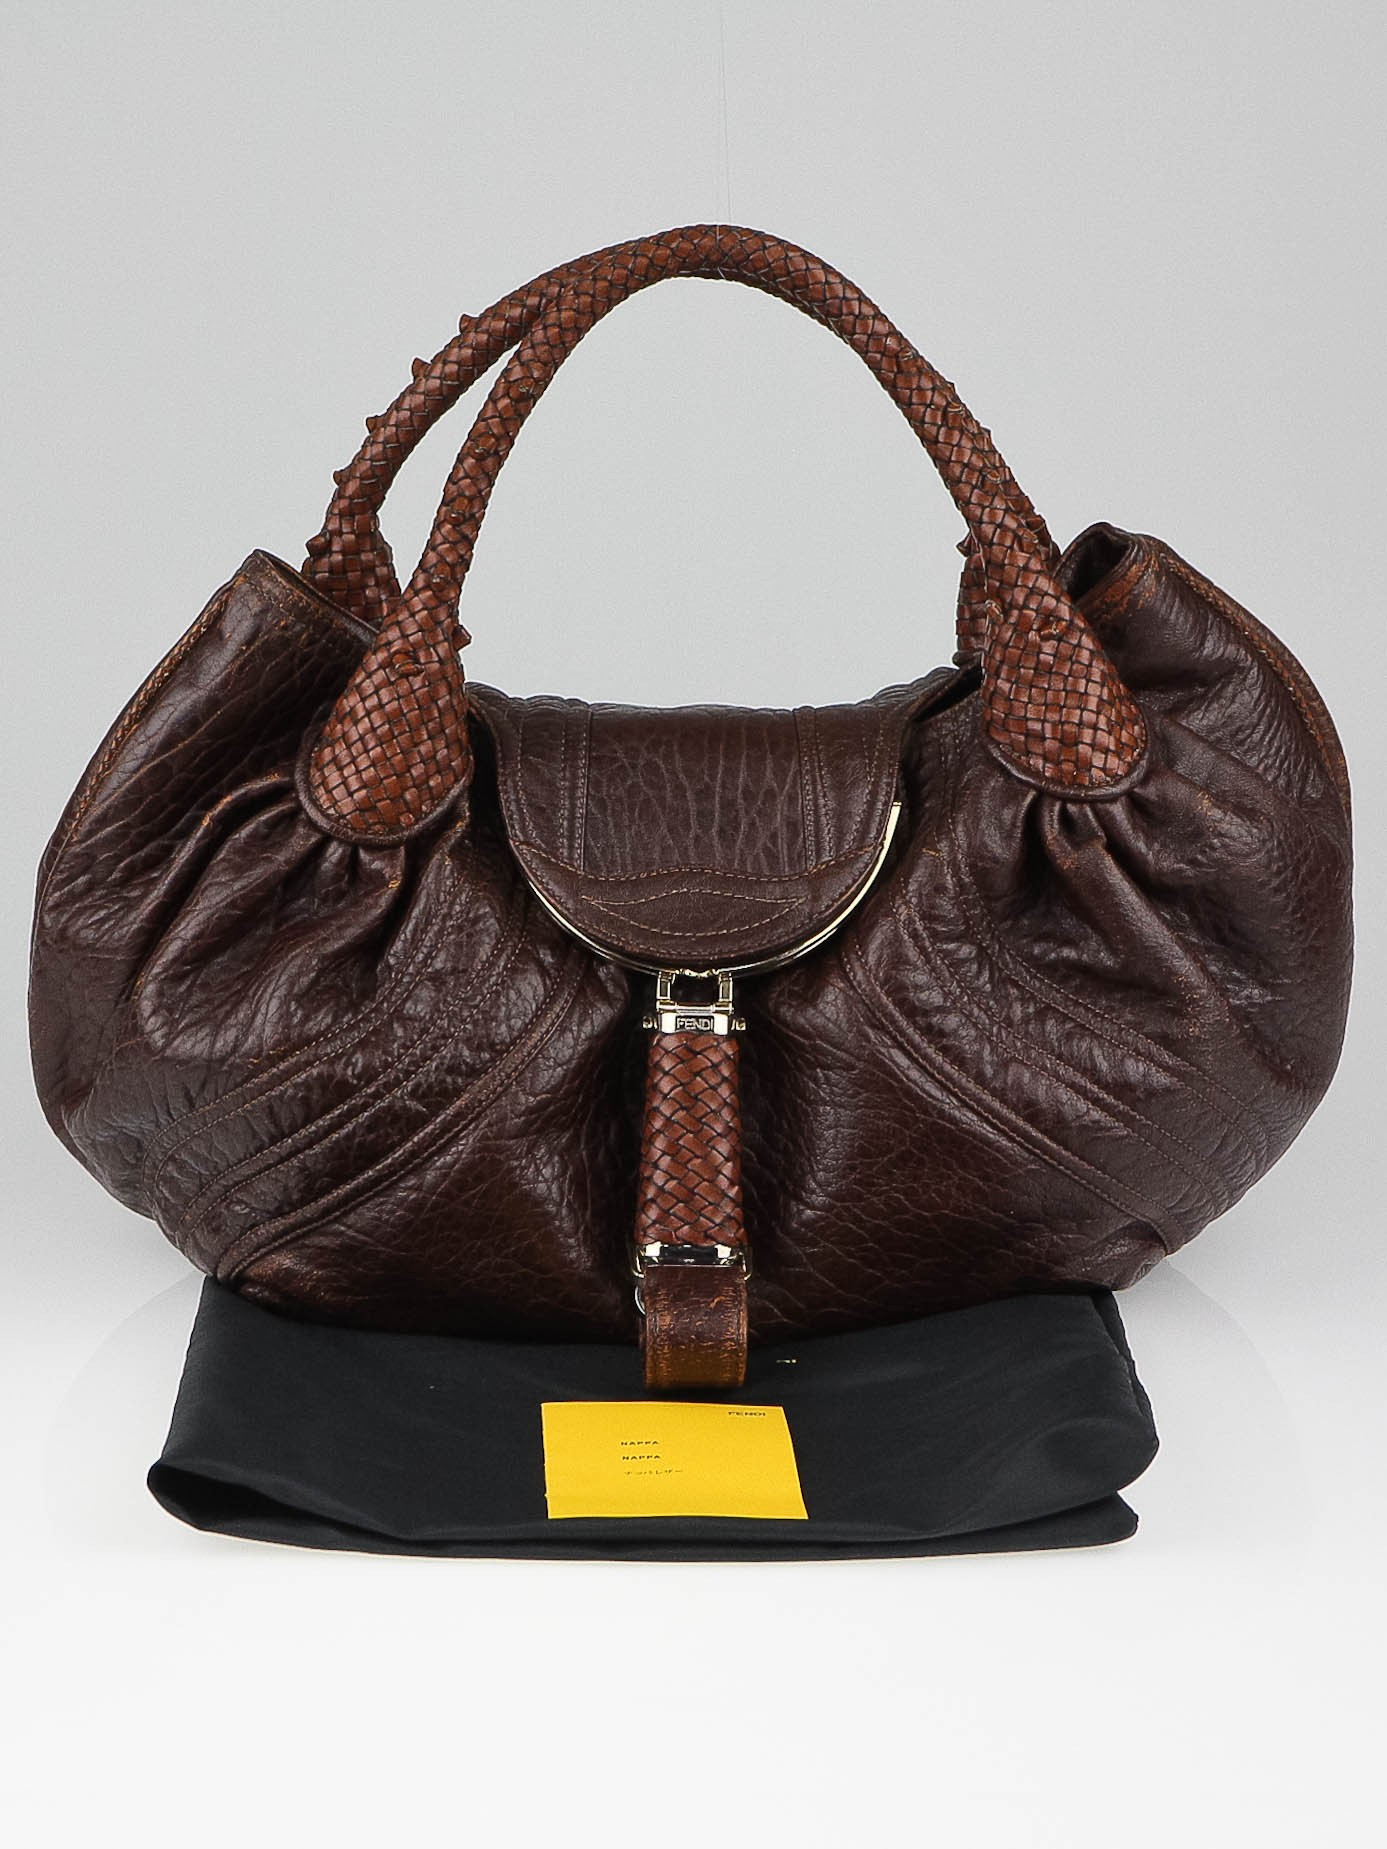 Leather Bags - Luxury Bags for Women | Fendi